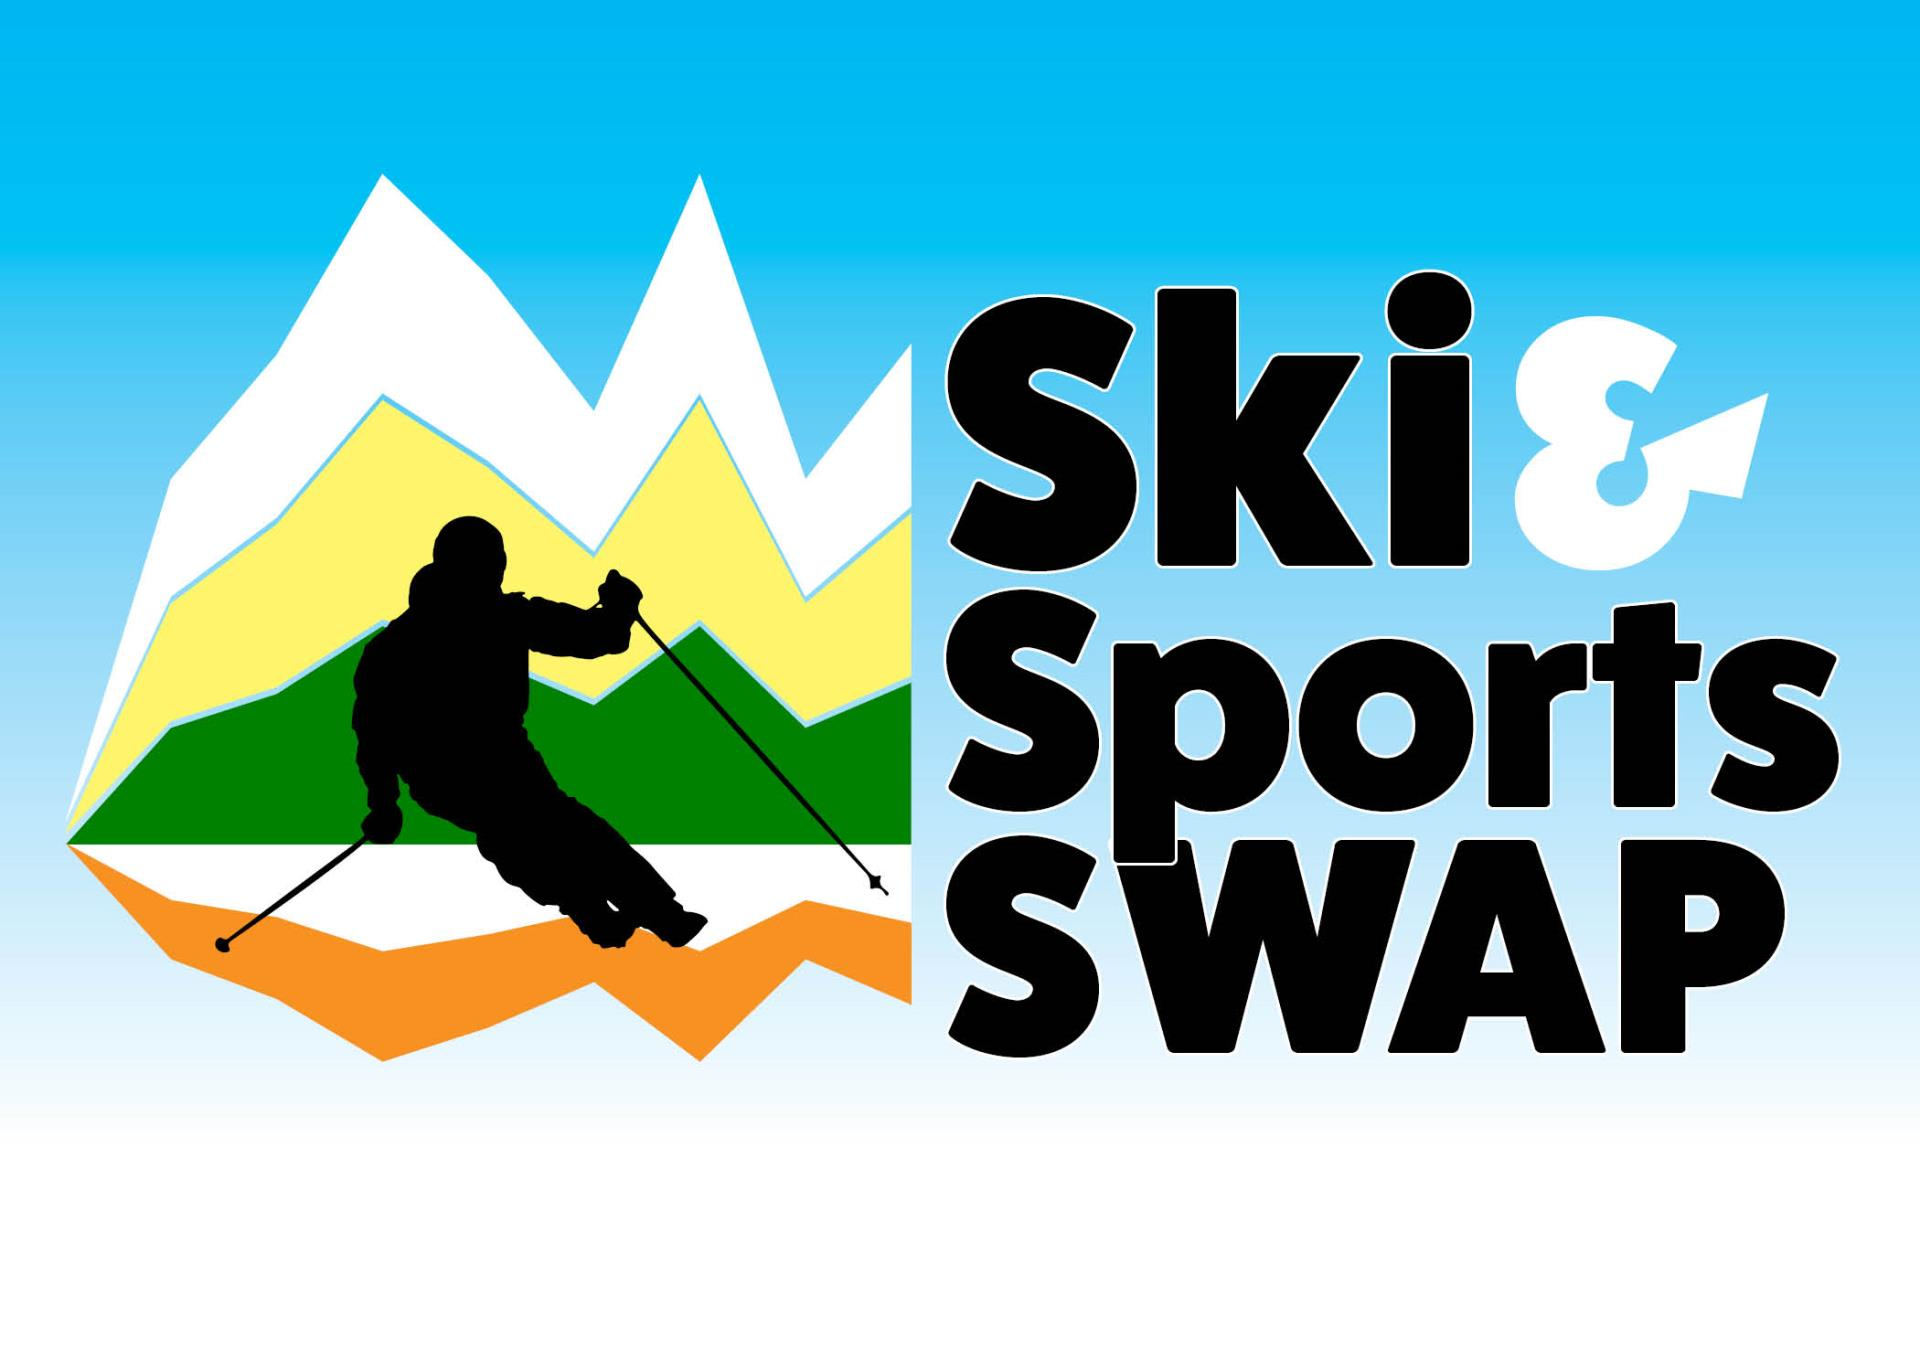 Ski & Sports Swap in Loveland